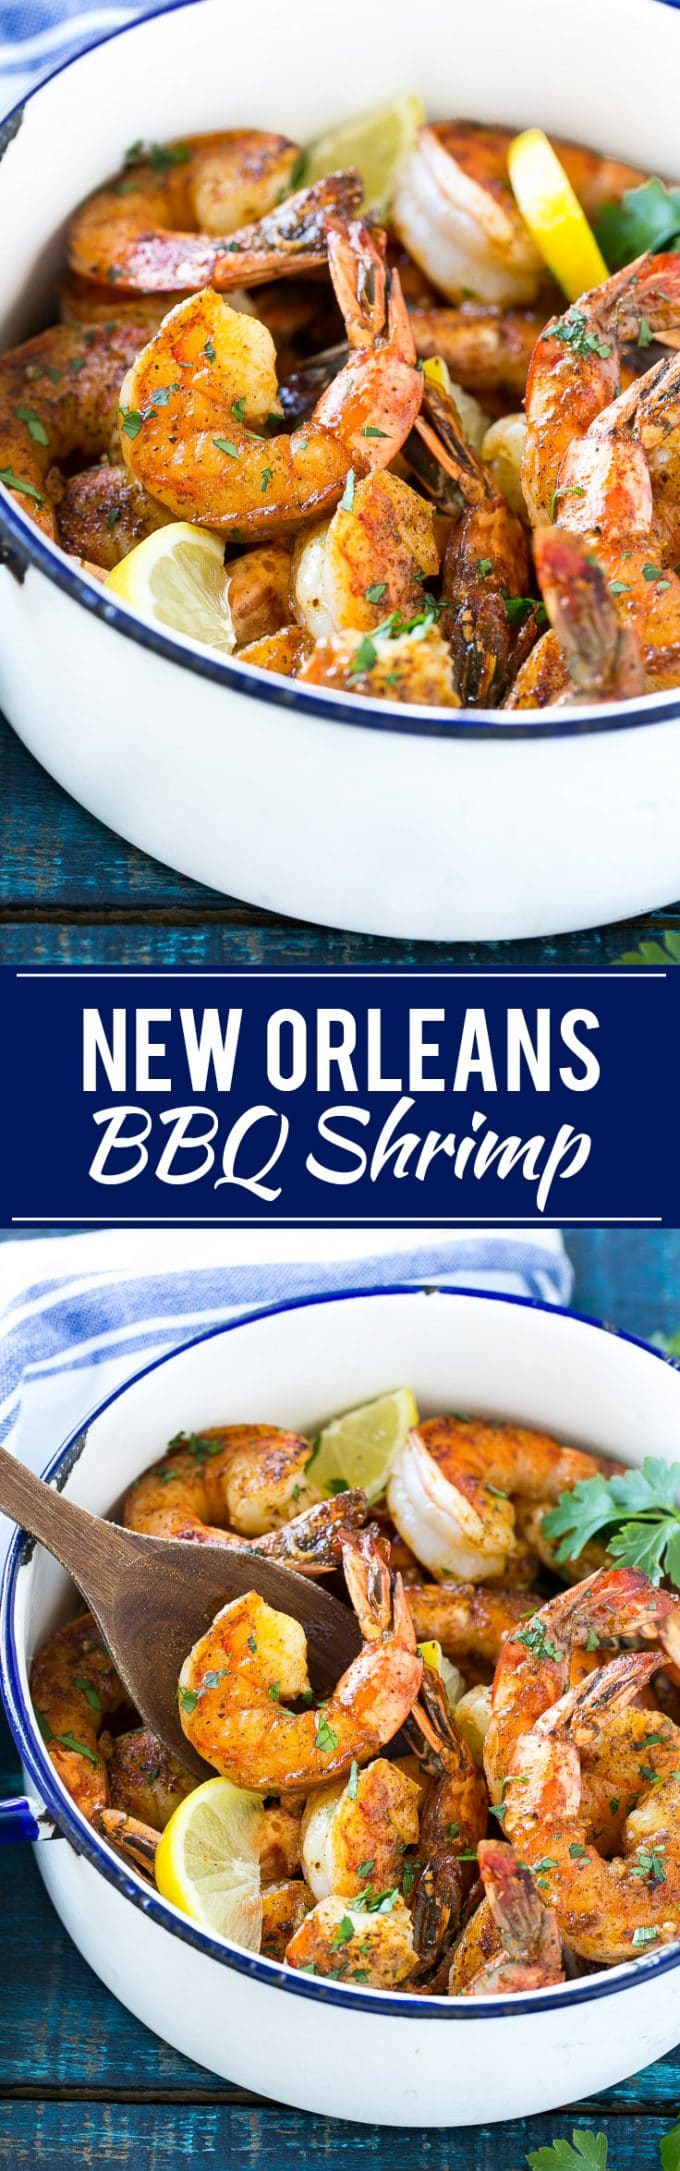 New Orleans BBQ Shrimp Recipe | Easy Shrimp Recipe | New Orleans Shrimp #shrimp #seafood #dinner #appetizer #dinneratthezoo